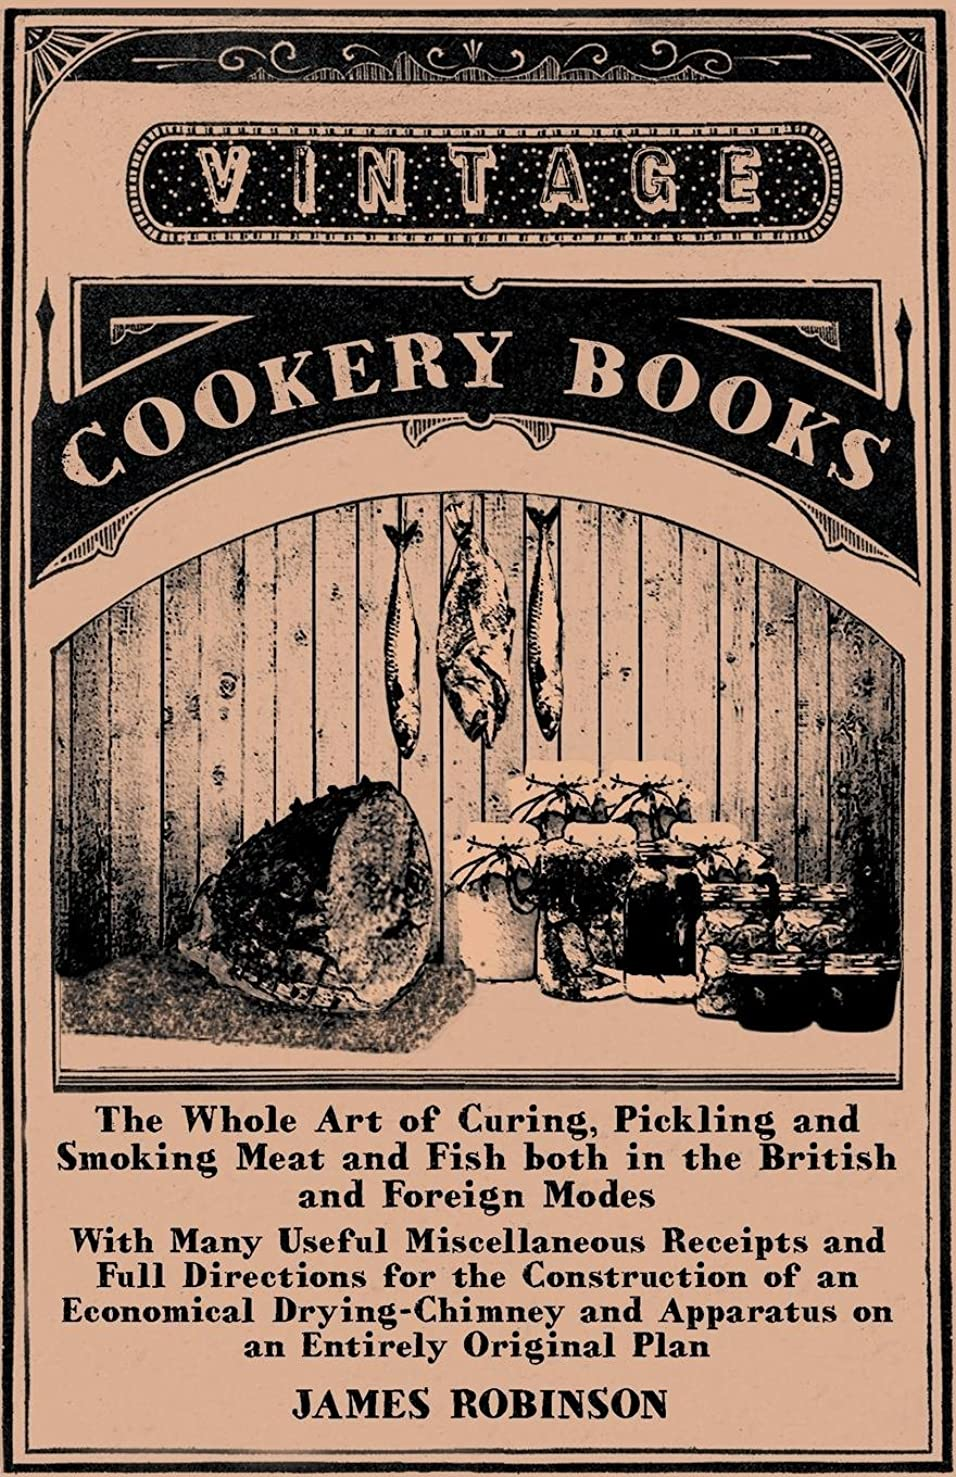 The Whole Art of Curing, Pickling and Smoking Meat and Fish both in the British and Foreign Modes With Many Useful Miscellaneous Receipts and Full ... and Apparatus on an Entirely Original Plan